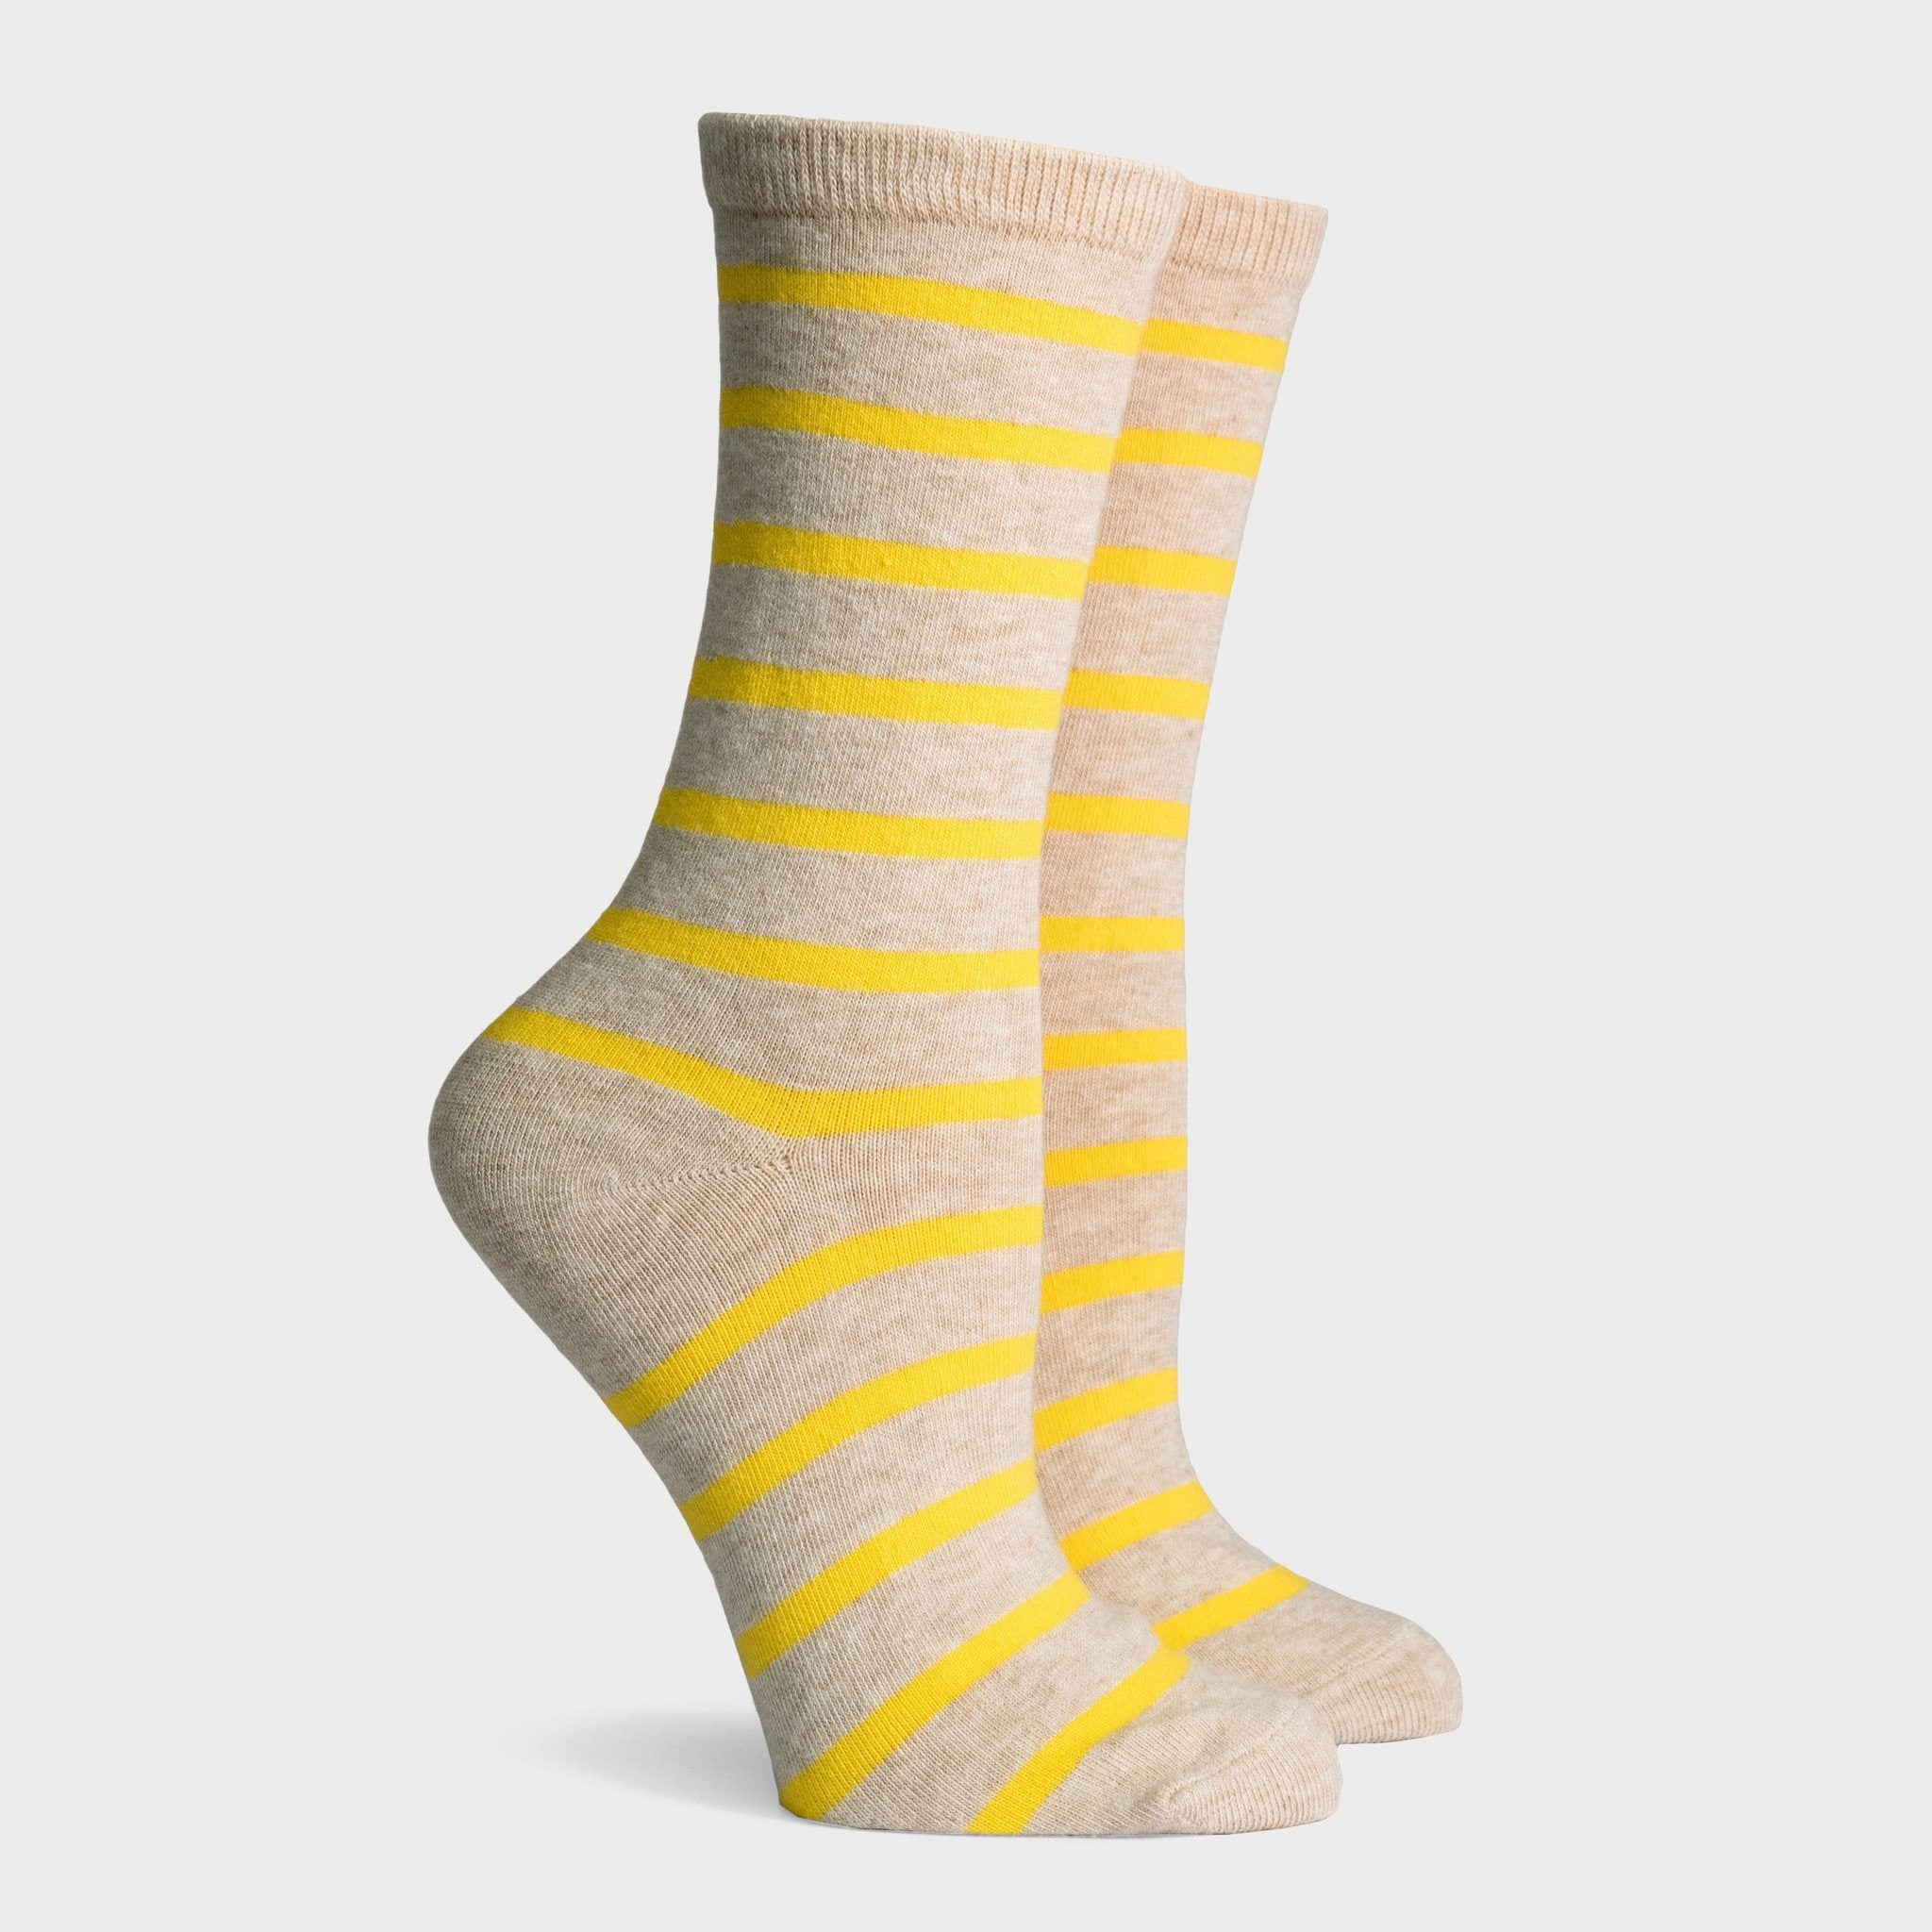 Richer Poorer Nora Women's Socks Oatmeal Yellow